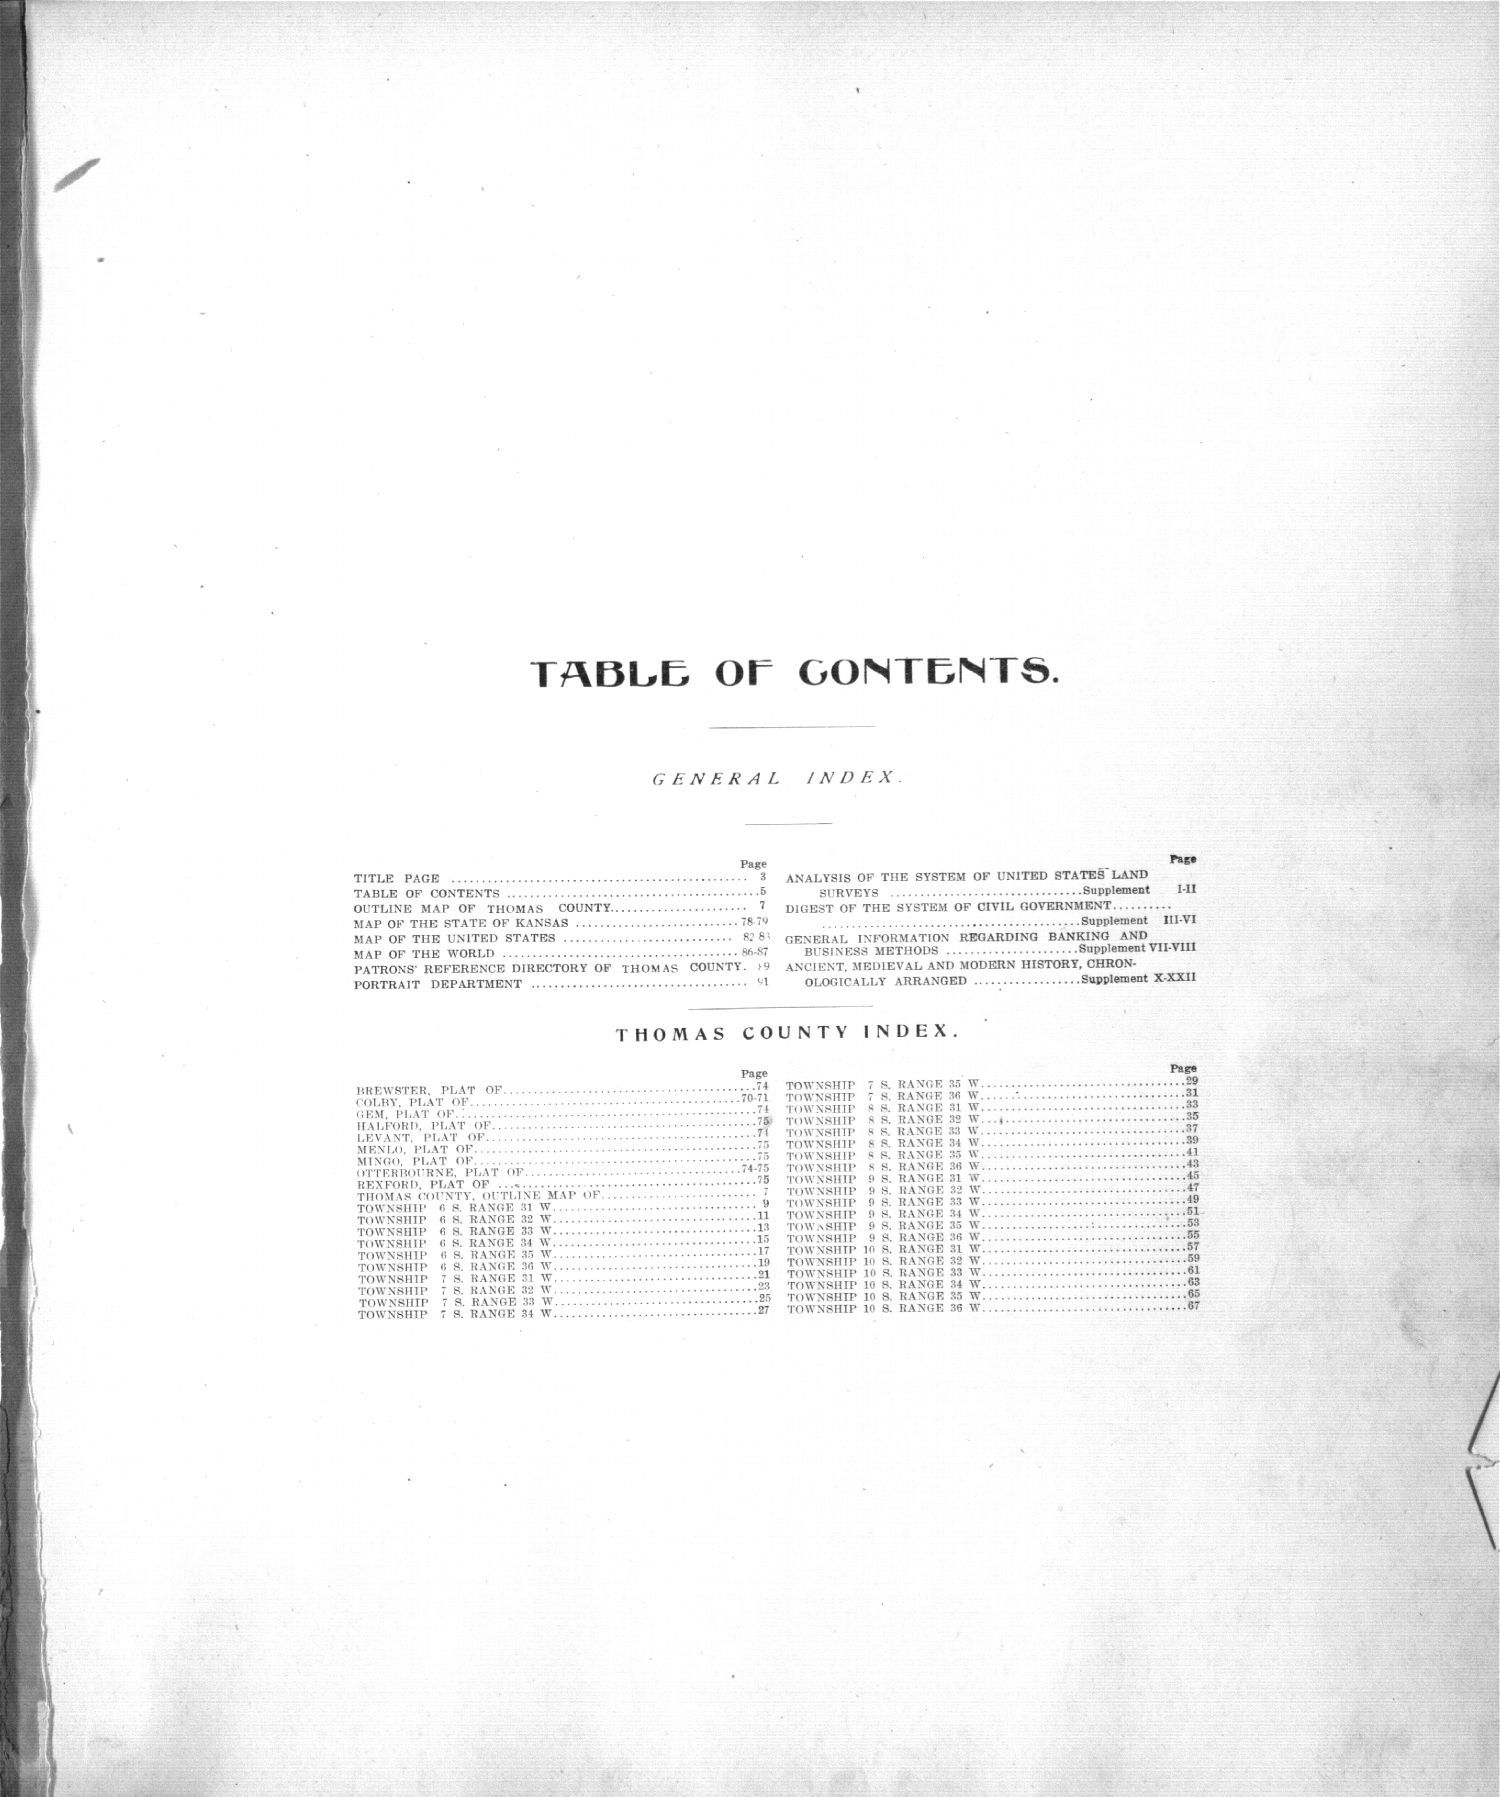 Standard atlas of Thomas County, Kansas - Table of Contents